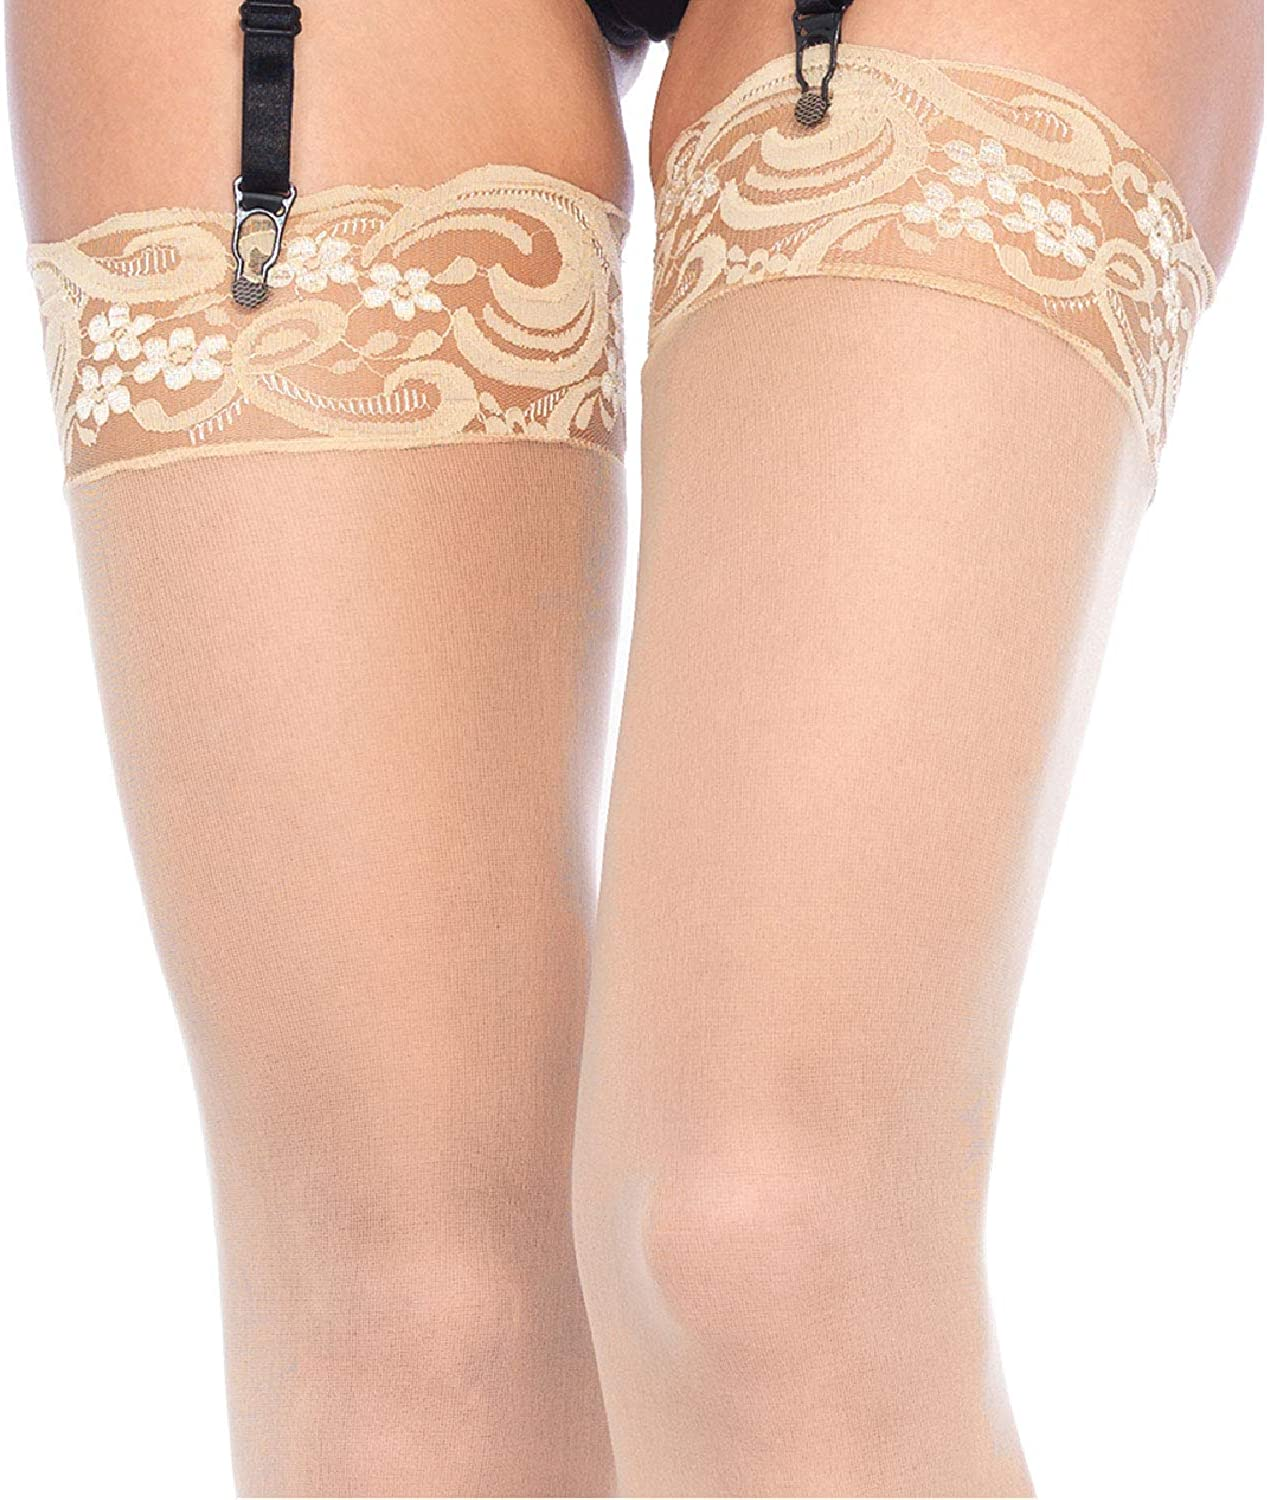 Nylon Sheer Thigh High With Lace Top